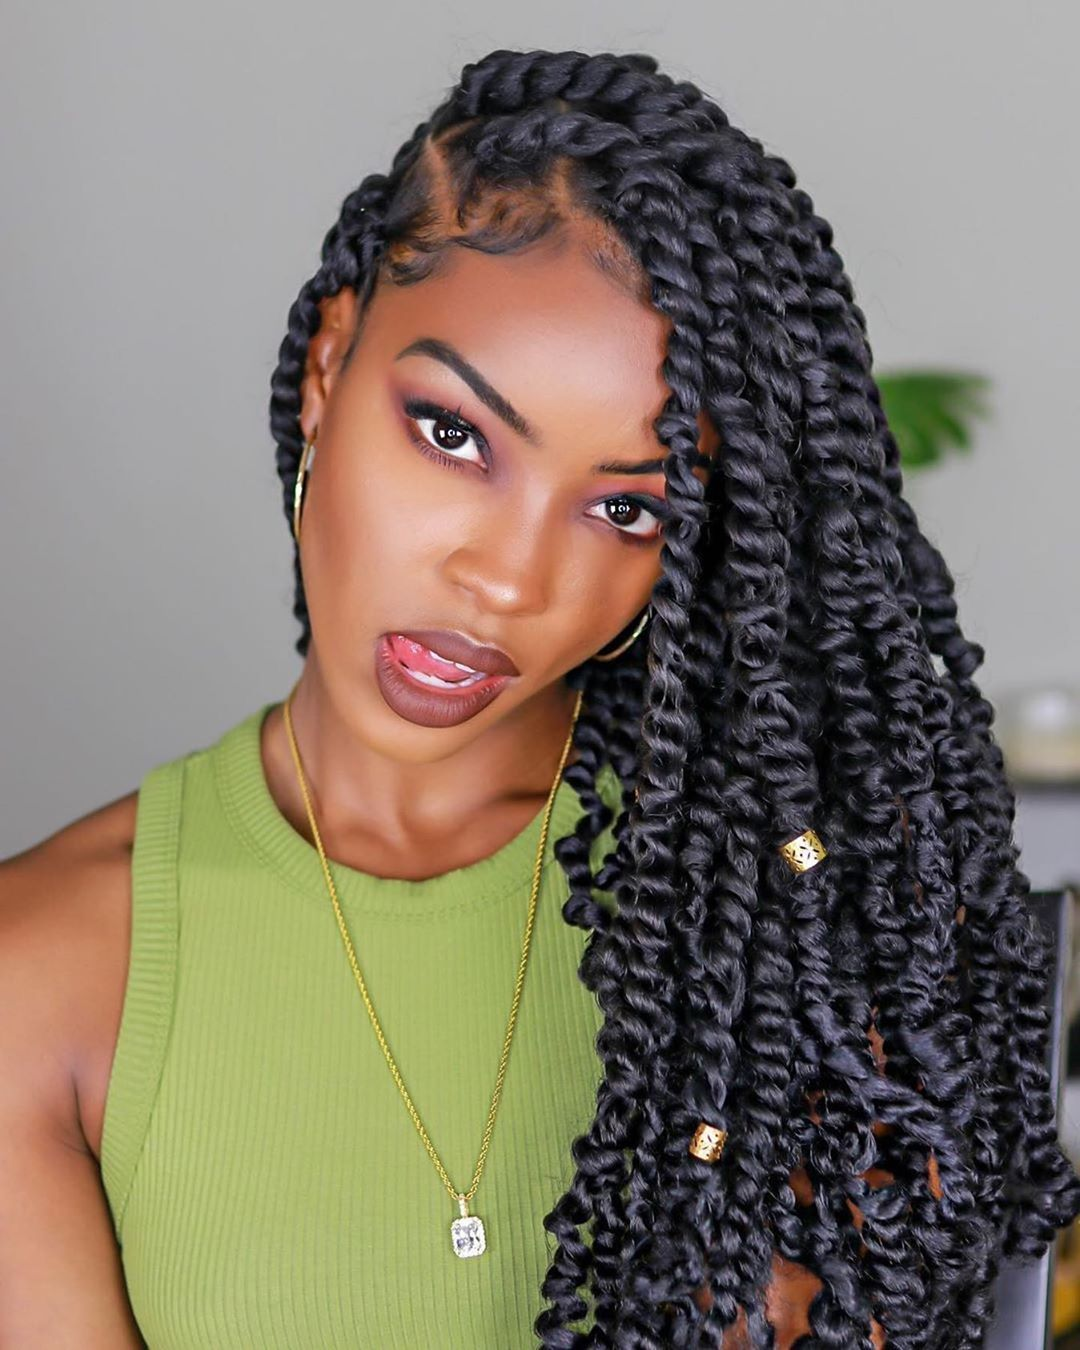 Voiceofhair On Instagram These Goddess Twists On Slimreshae Are Gorgeous Would You Rock Twist Braid Hairstyles Natural Hair Styles Twist Hairstyles